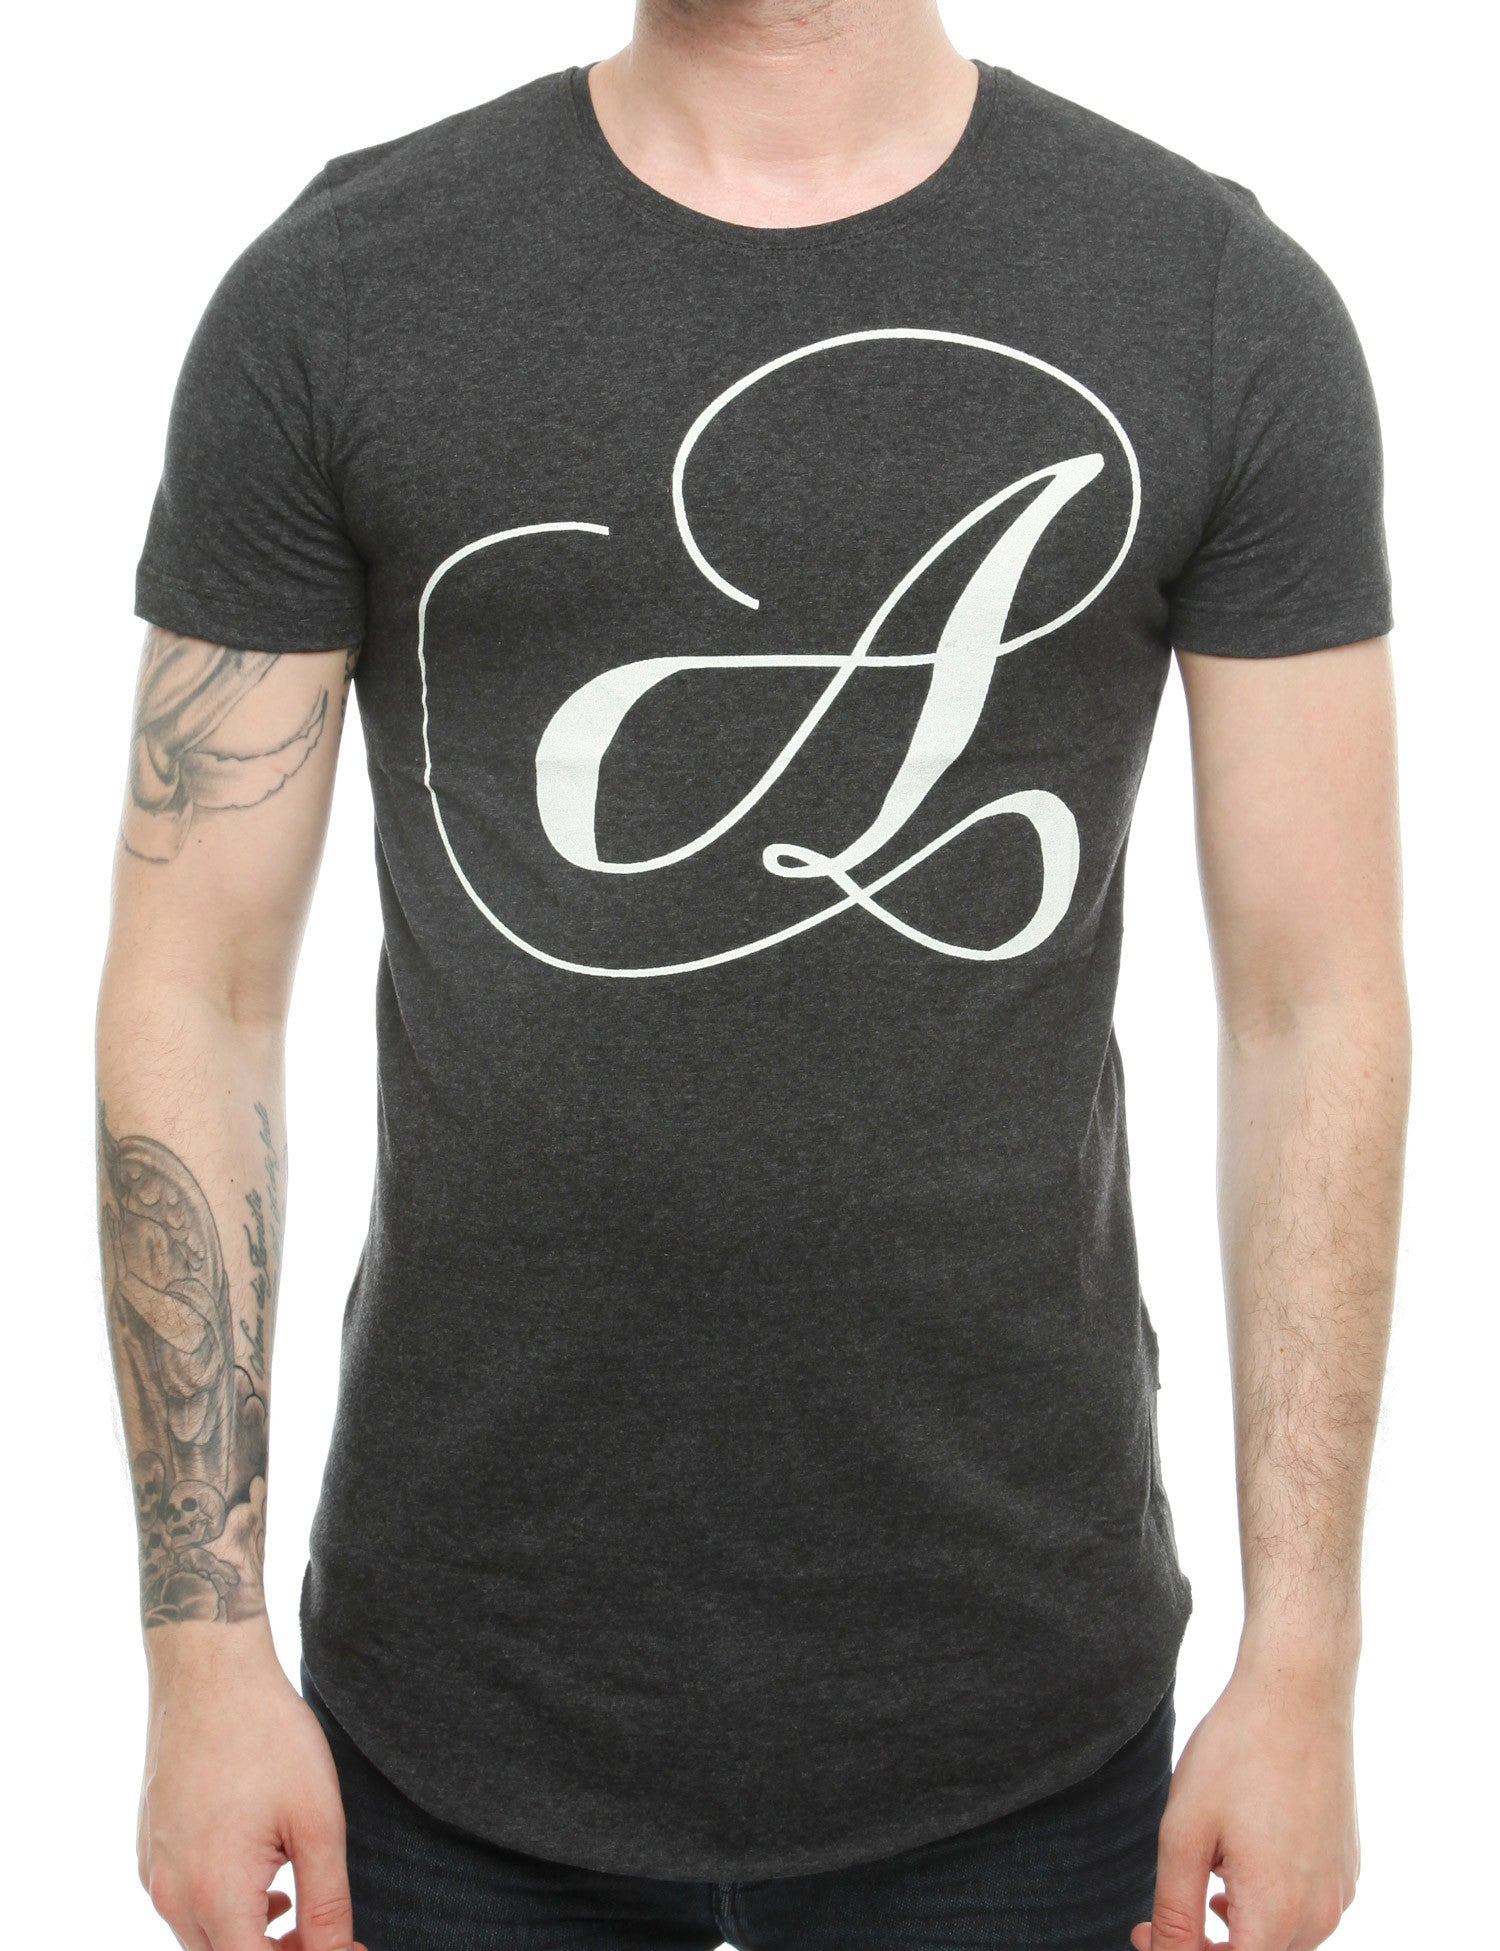 Free Side T-Shirt 16-110 Anthracite Grey